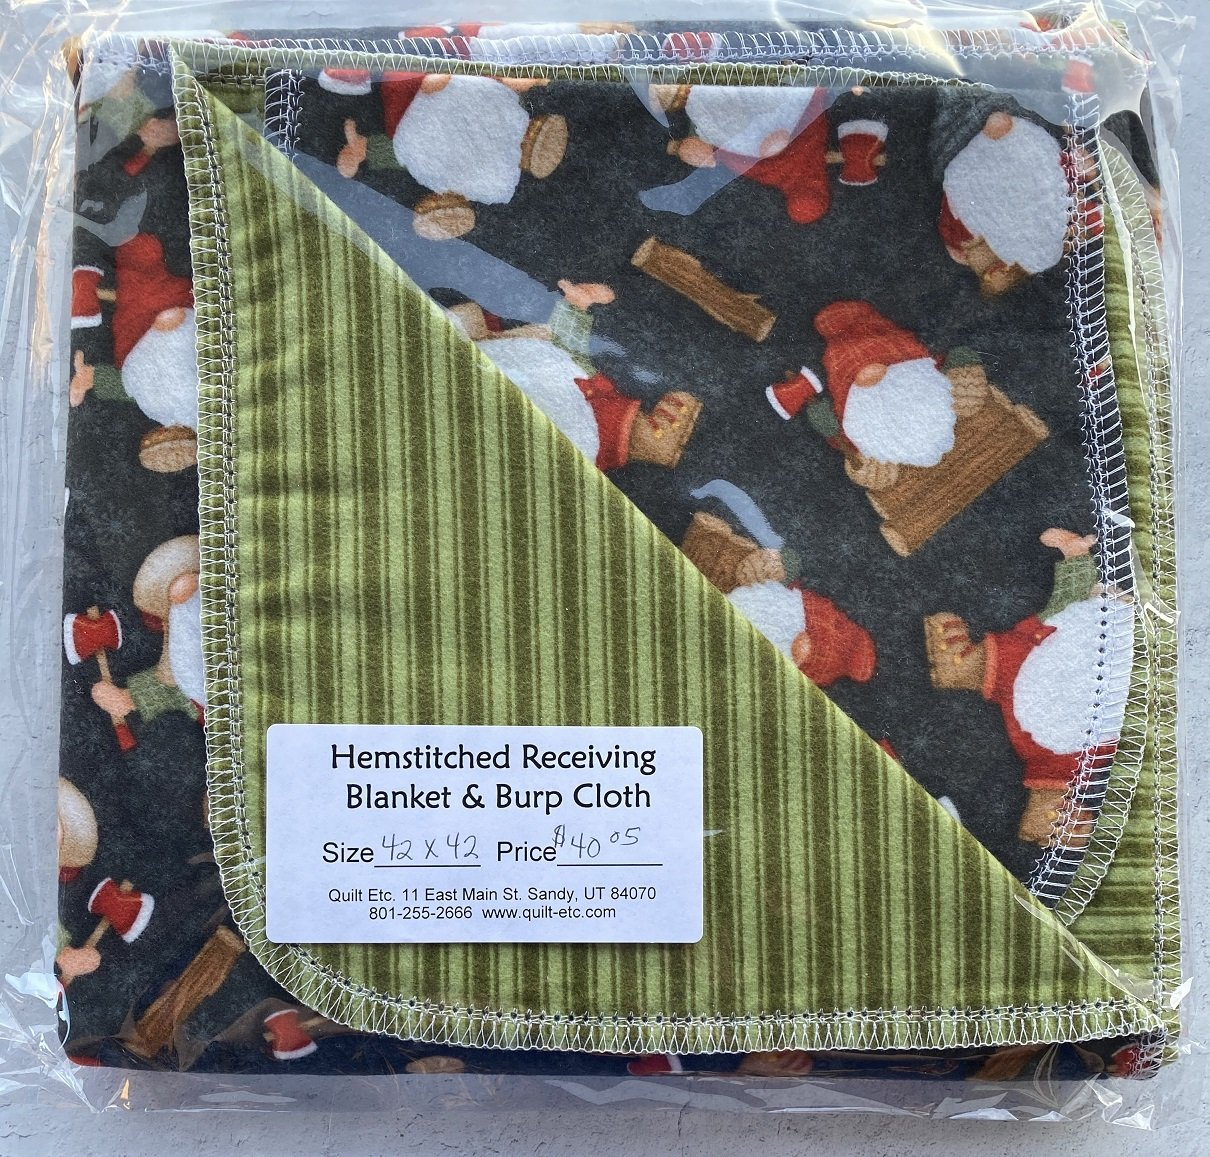 Hemstitched Receiving Blanket & Burp Cloth 22